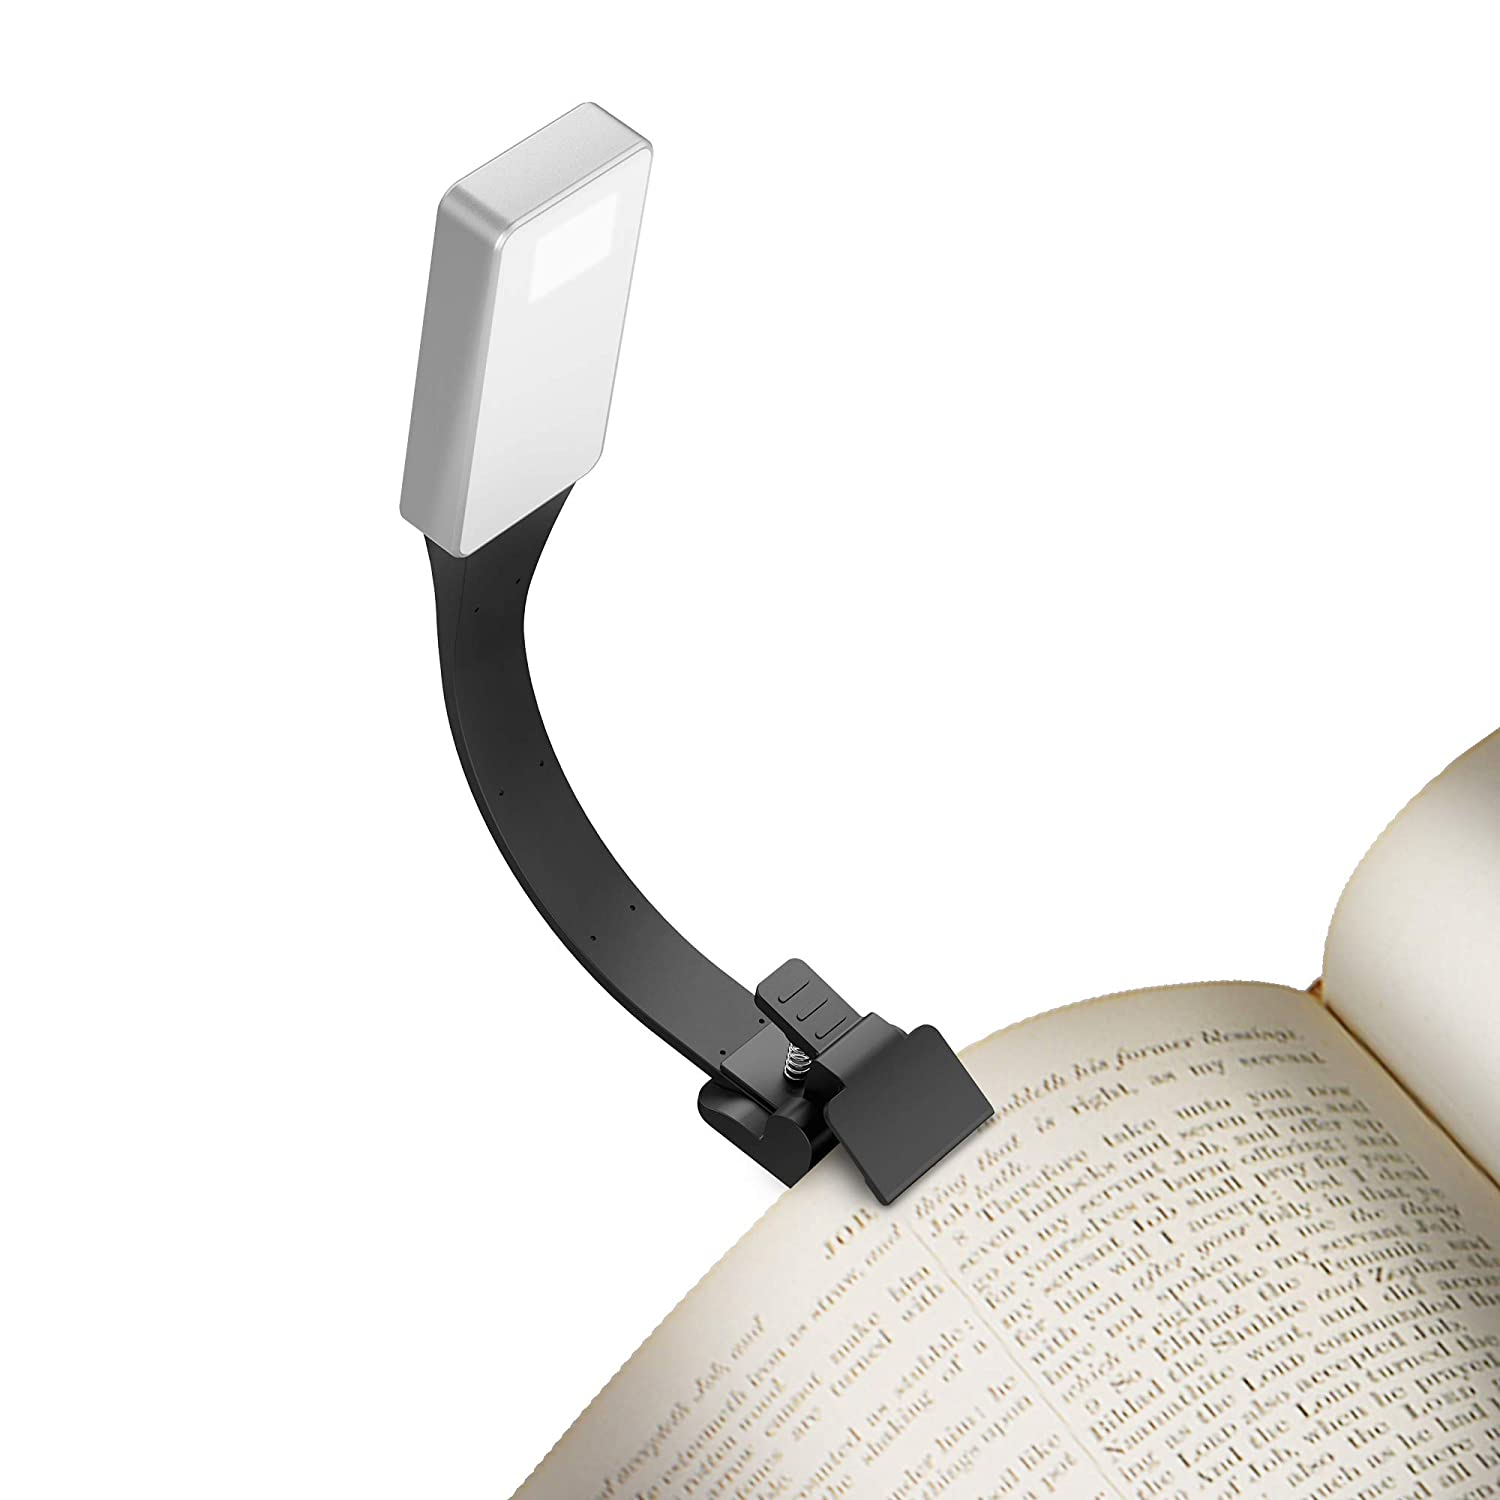 Simpeak Book Light, Clip on Warm Led Reading Light USB Rechargeable, 50 Lumens 3 Brightness Level Reading Lamp for  Kindle/eBook Reader/Books / iPad